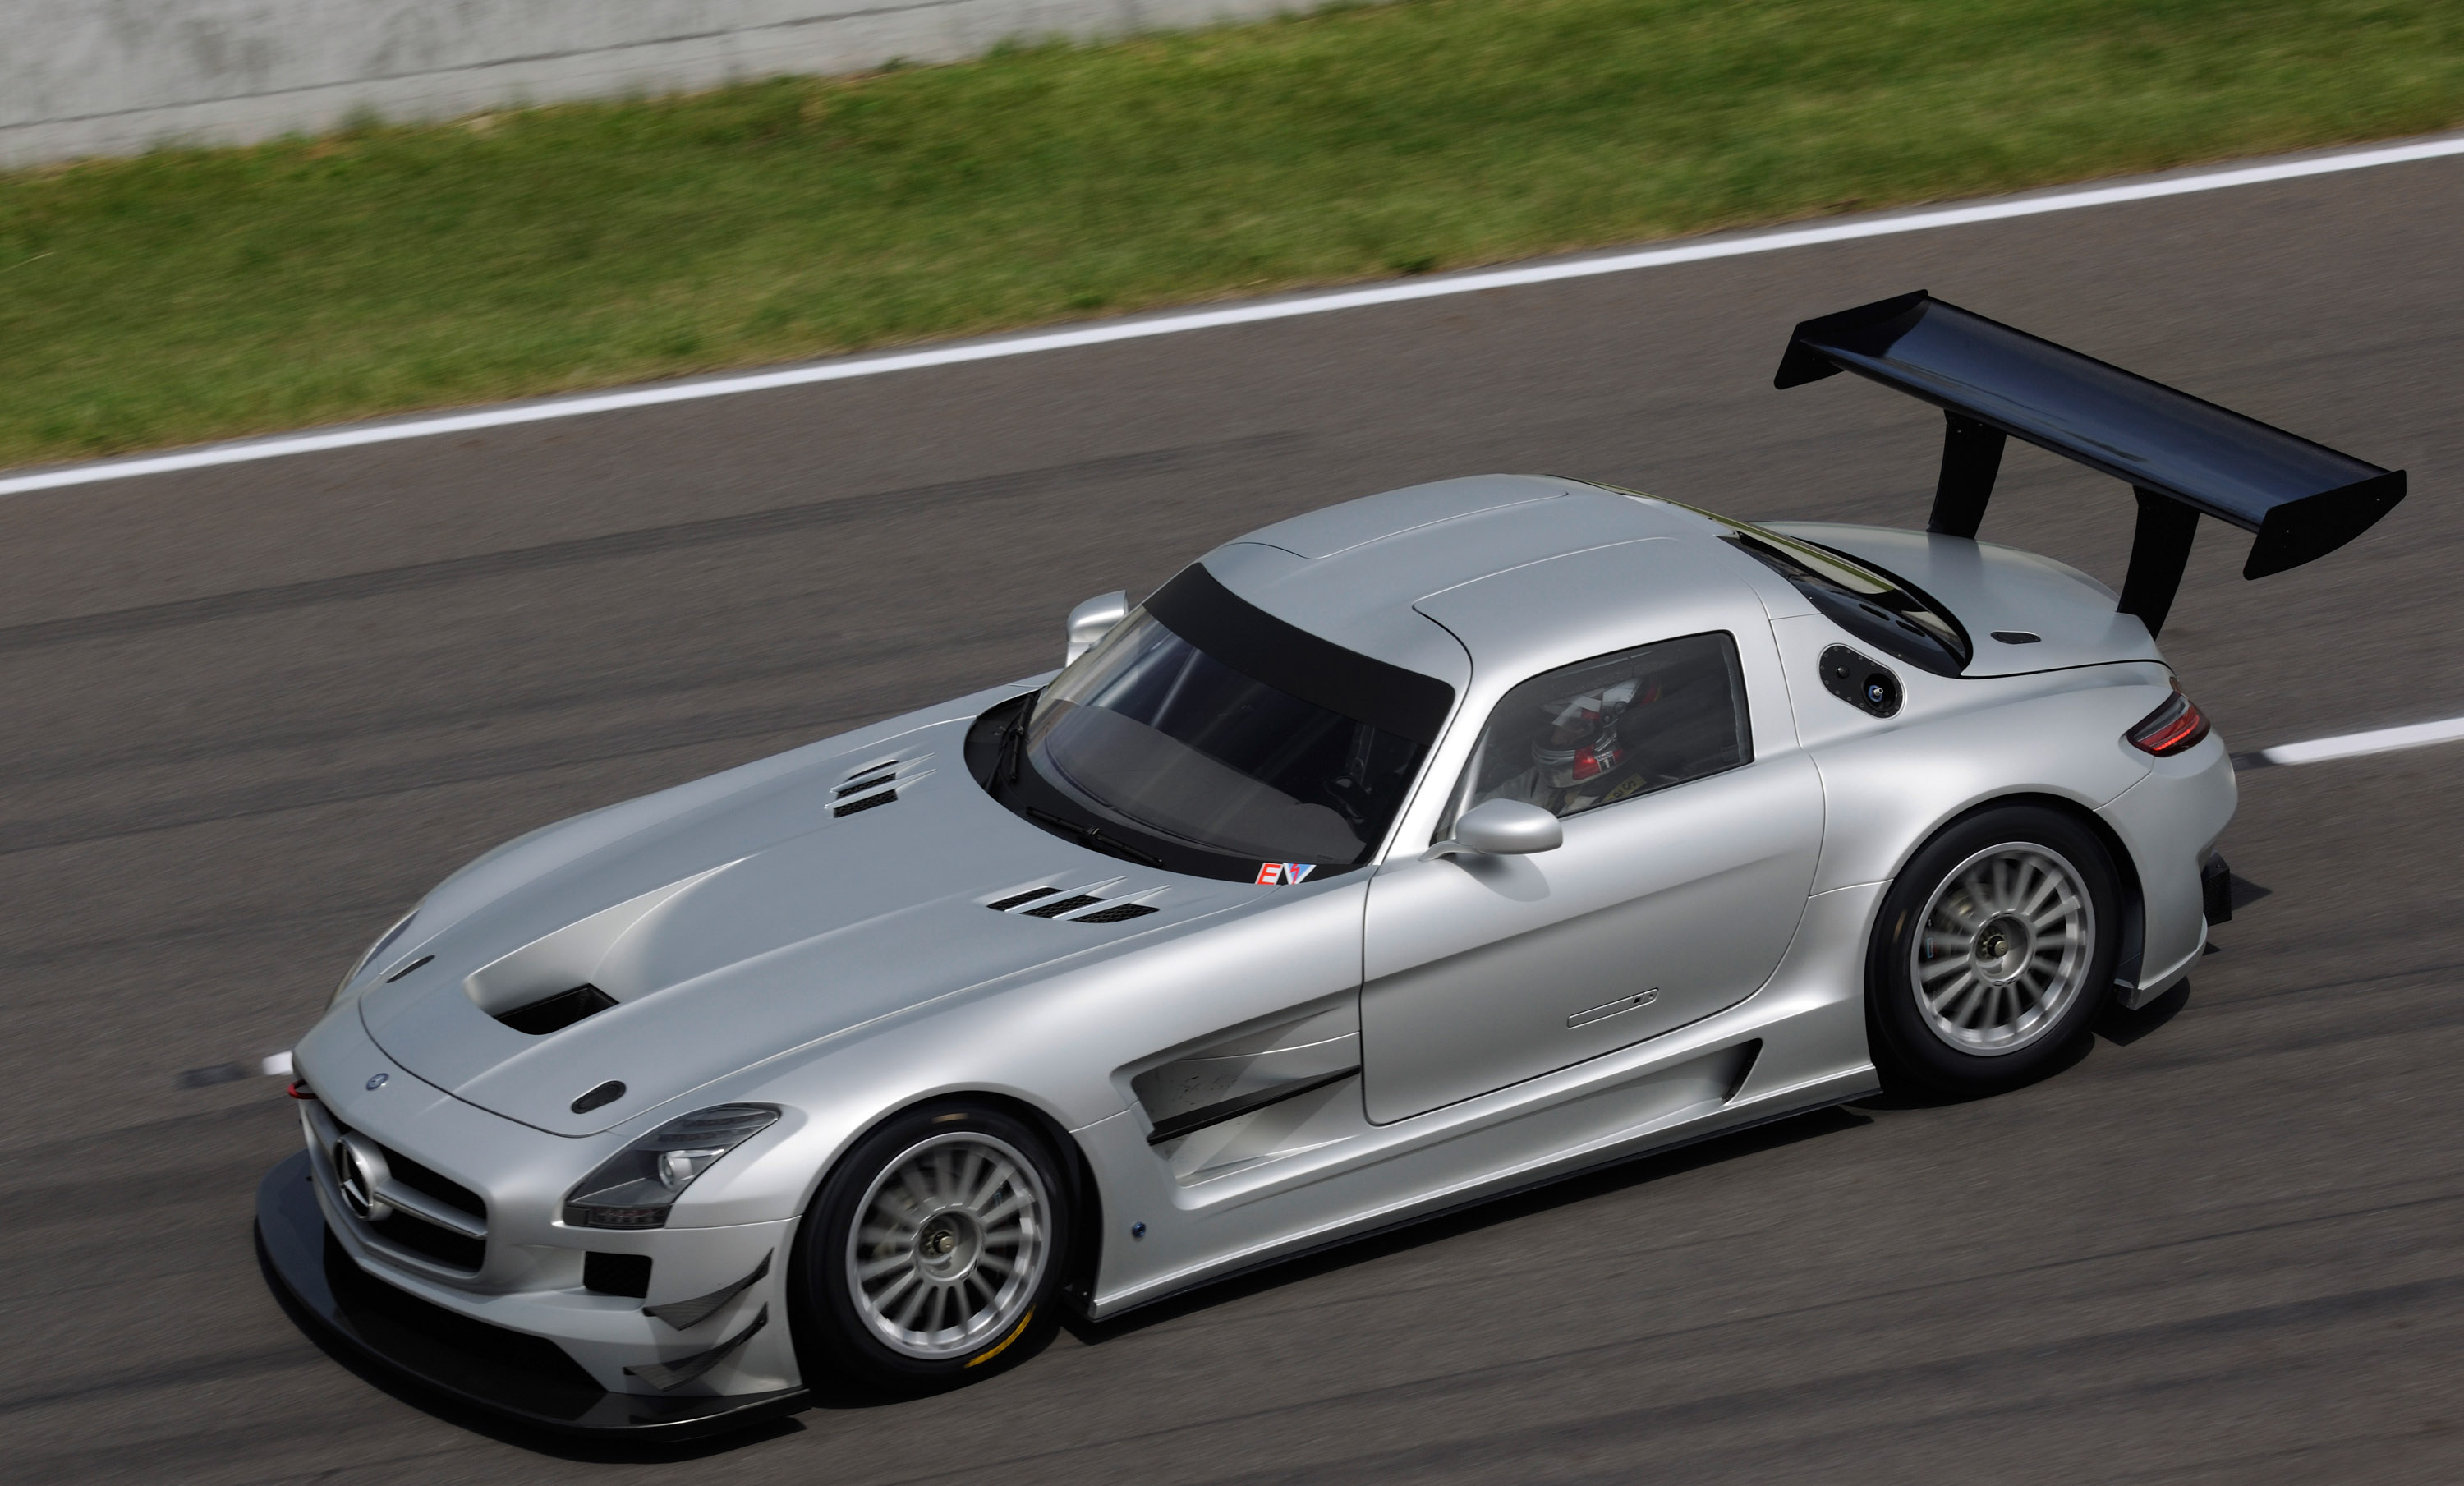 Mercedes Benz Sls Amg Review >> Mercedes-Benz SLS AMG GT3 hits the racetrack in February 2011